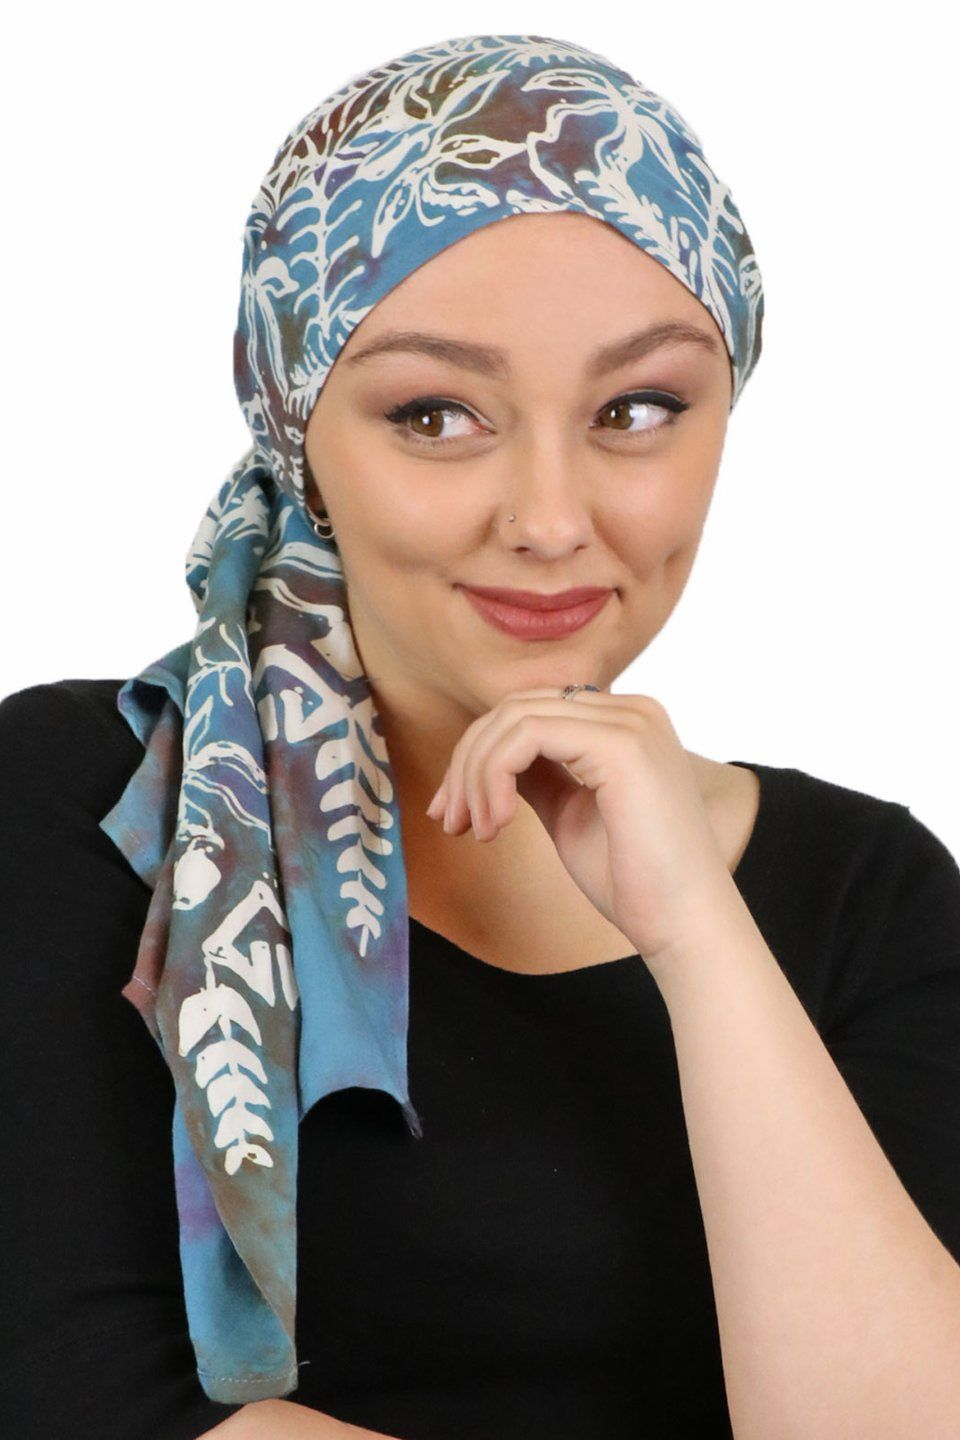 Easy To Tie Head Scarves For Women Hats Scarves and More